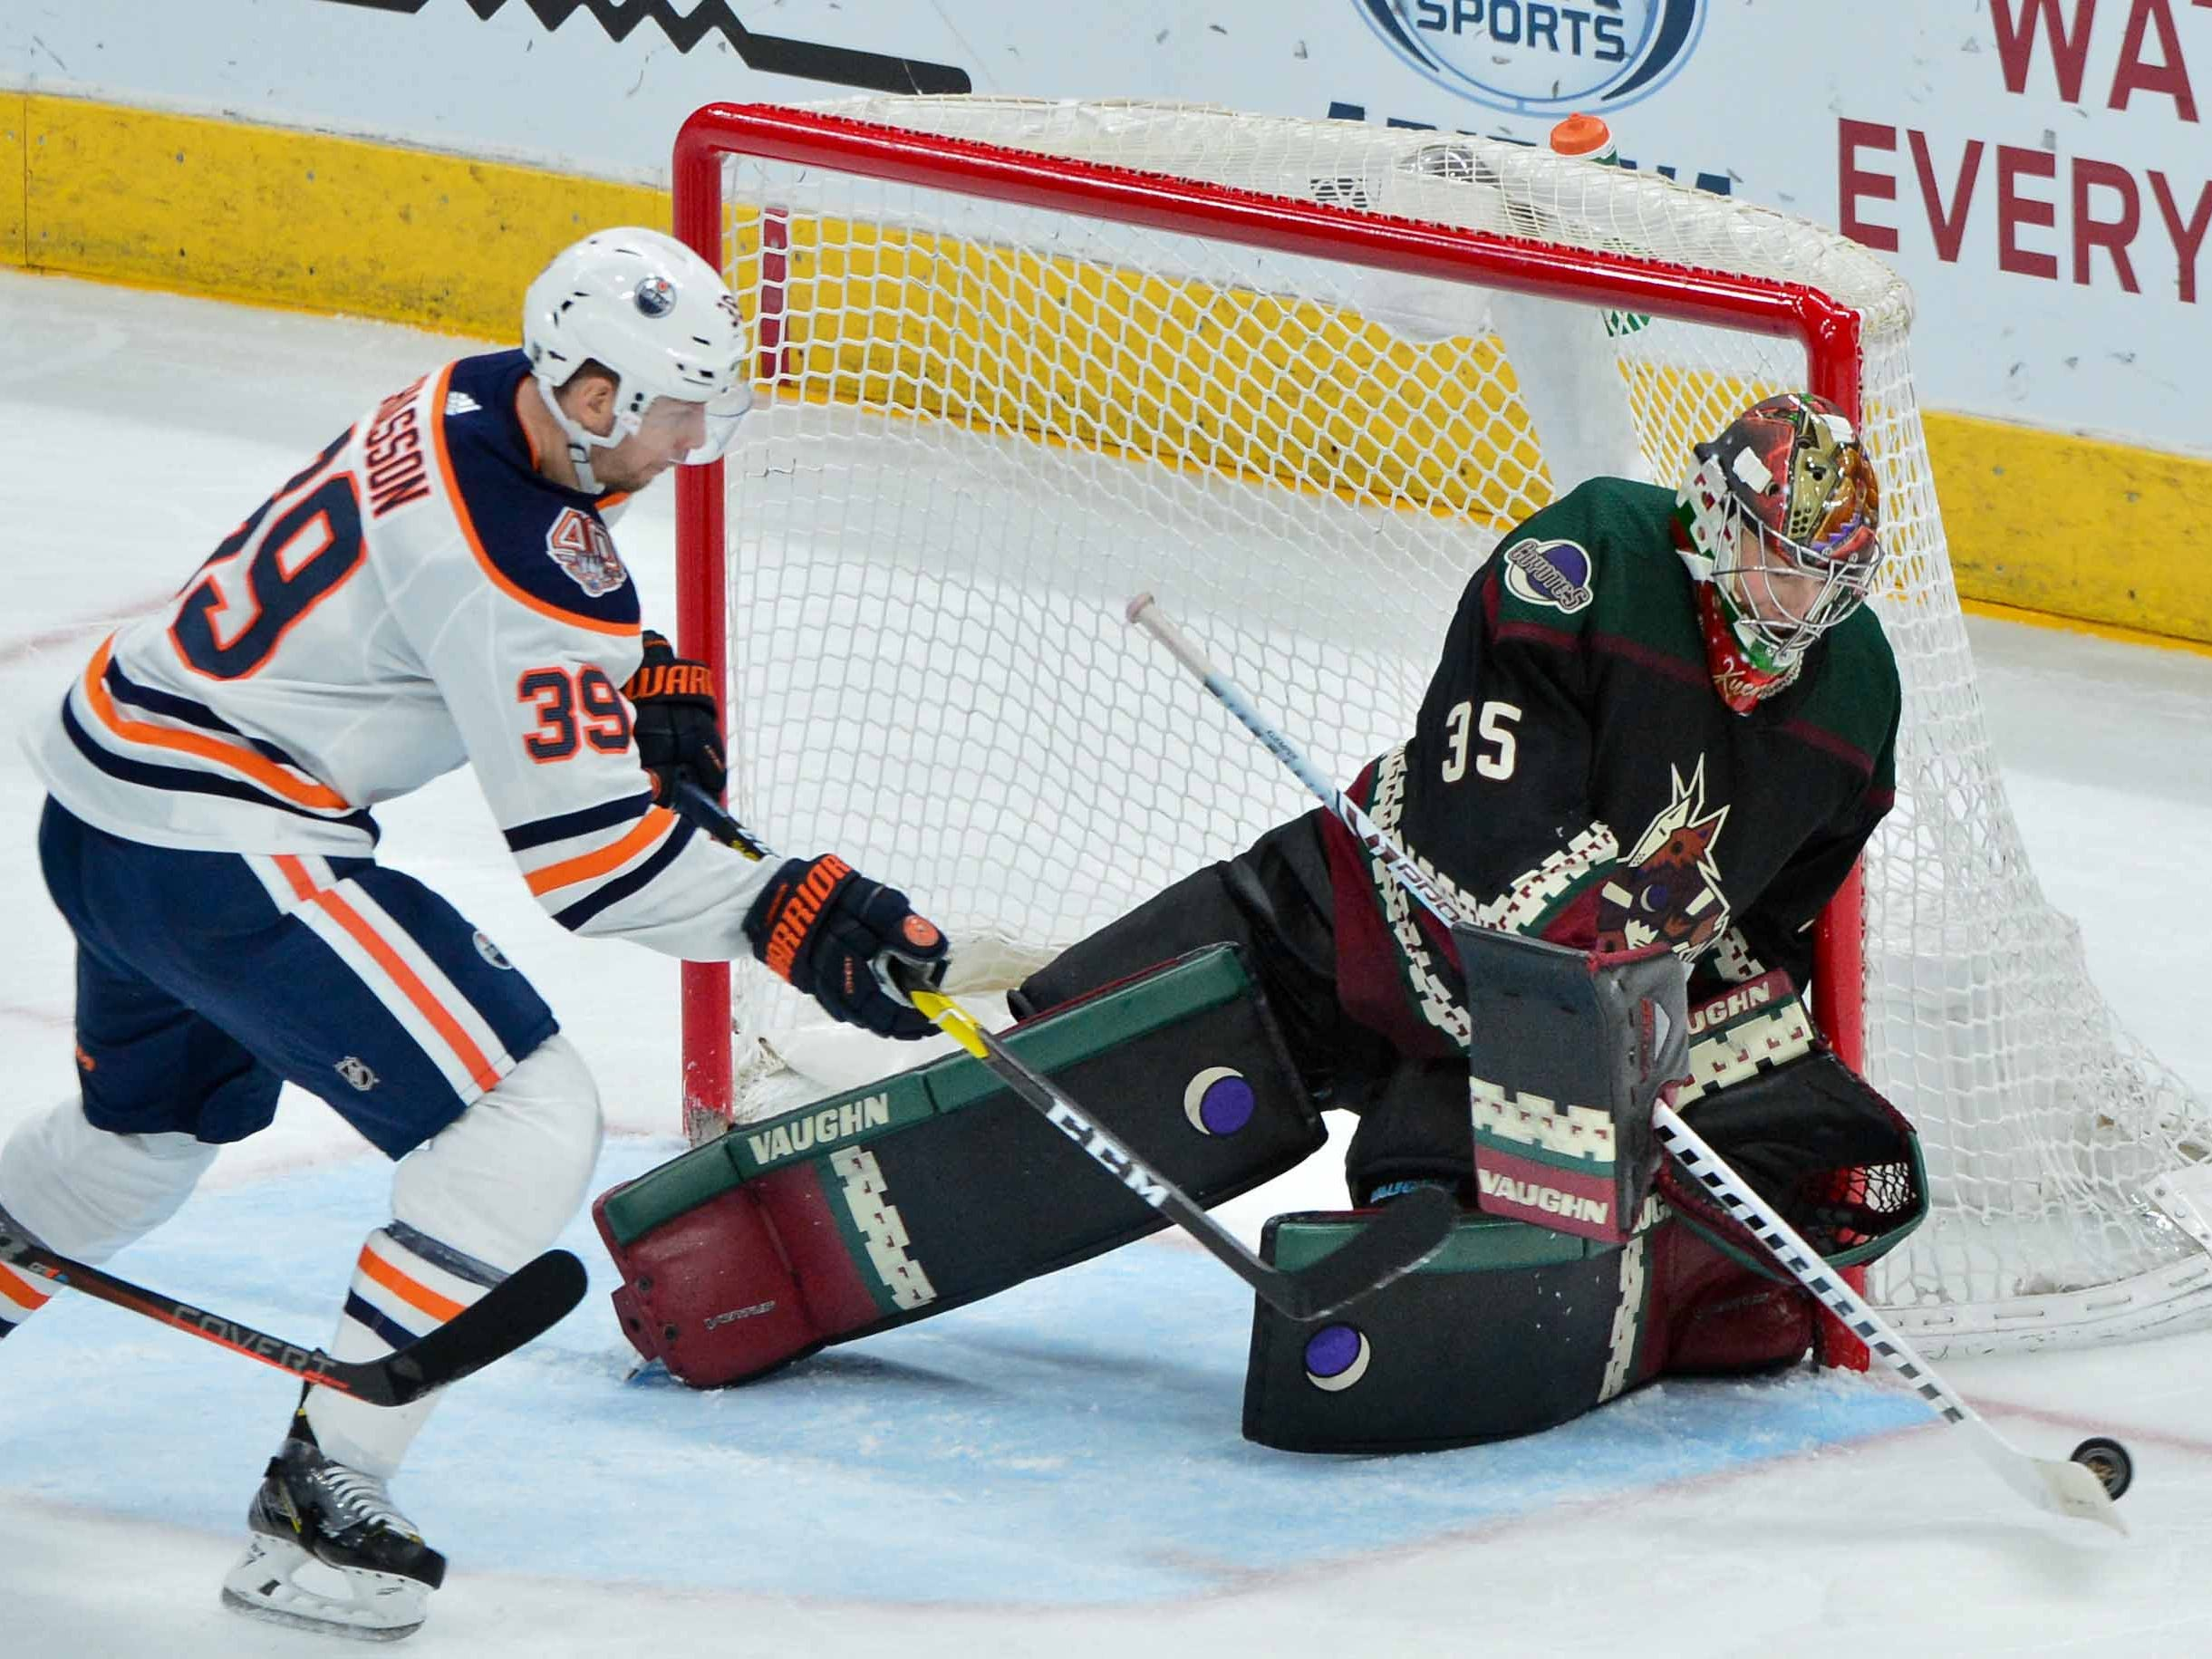 Mar 16, 2019; Glendale, AZ, USA; Arizona Coyotes goaltender Darcy Kuemper (35) sweeps the puck away from Edmonton Oilers right wing Alex Chiasson (39) during the second period at Gila River Arena.